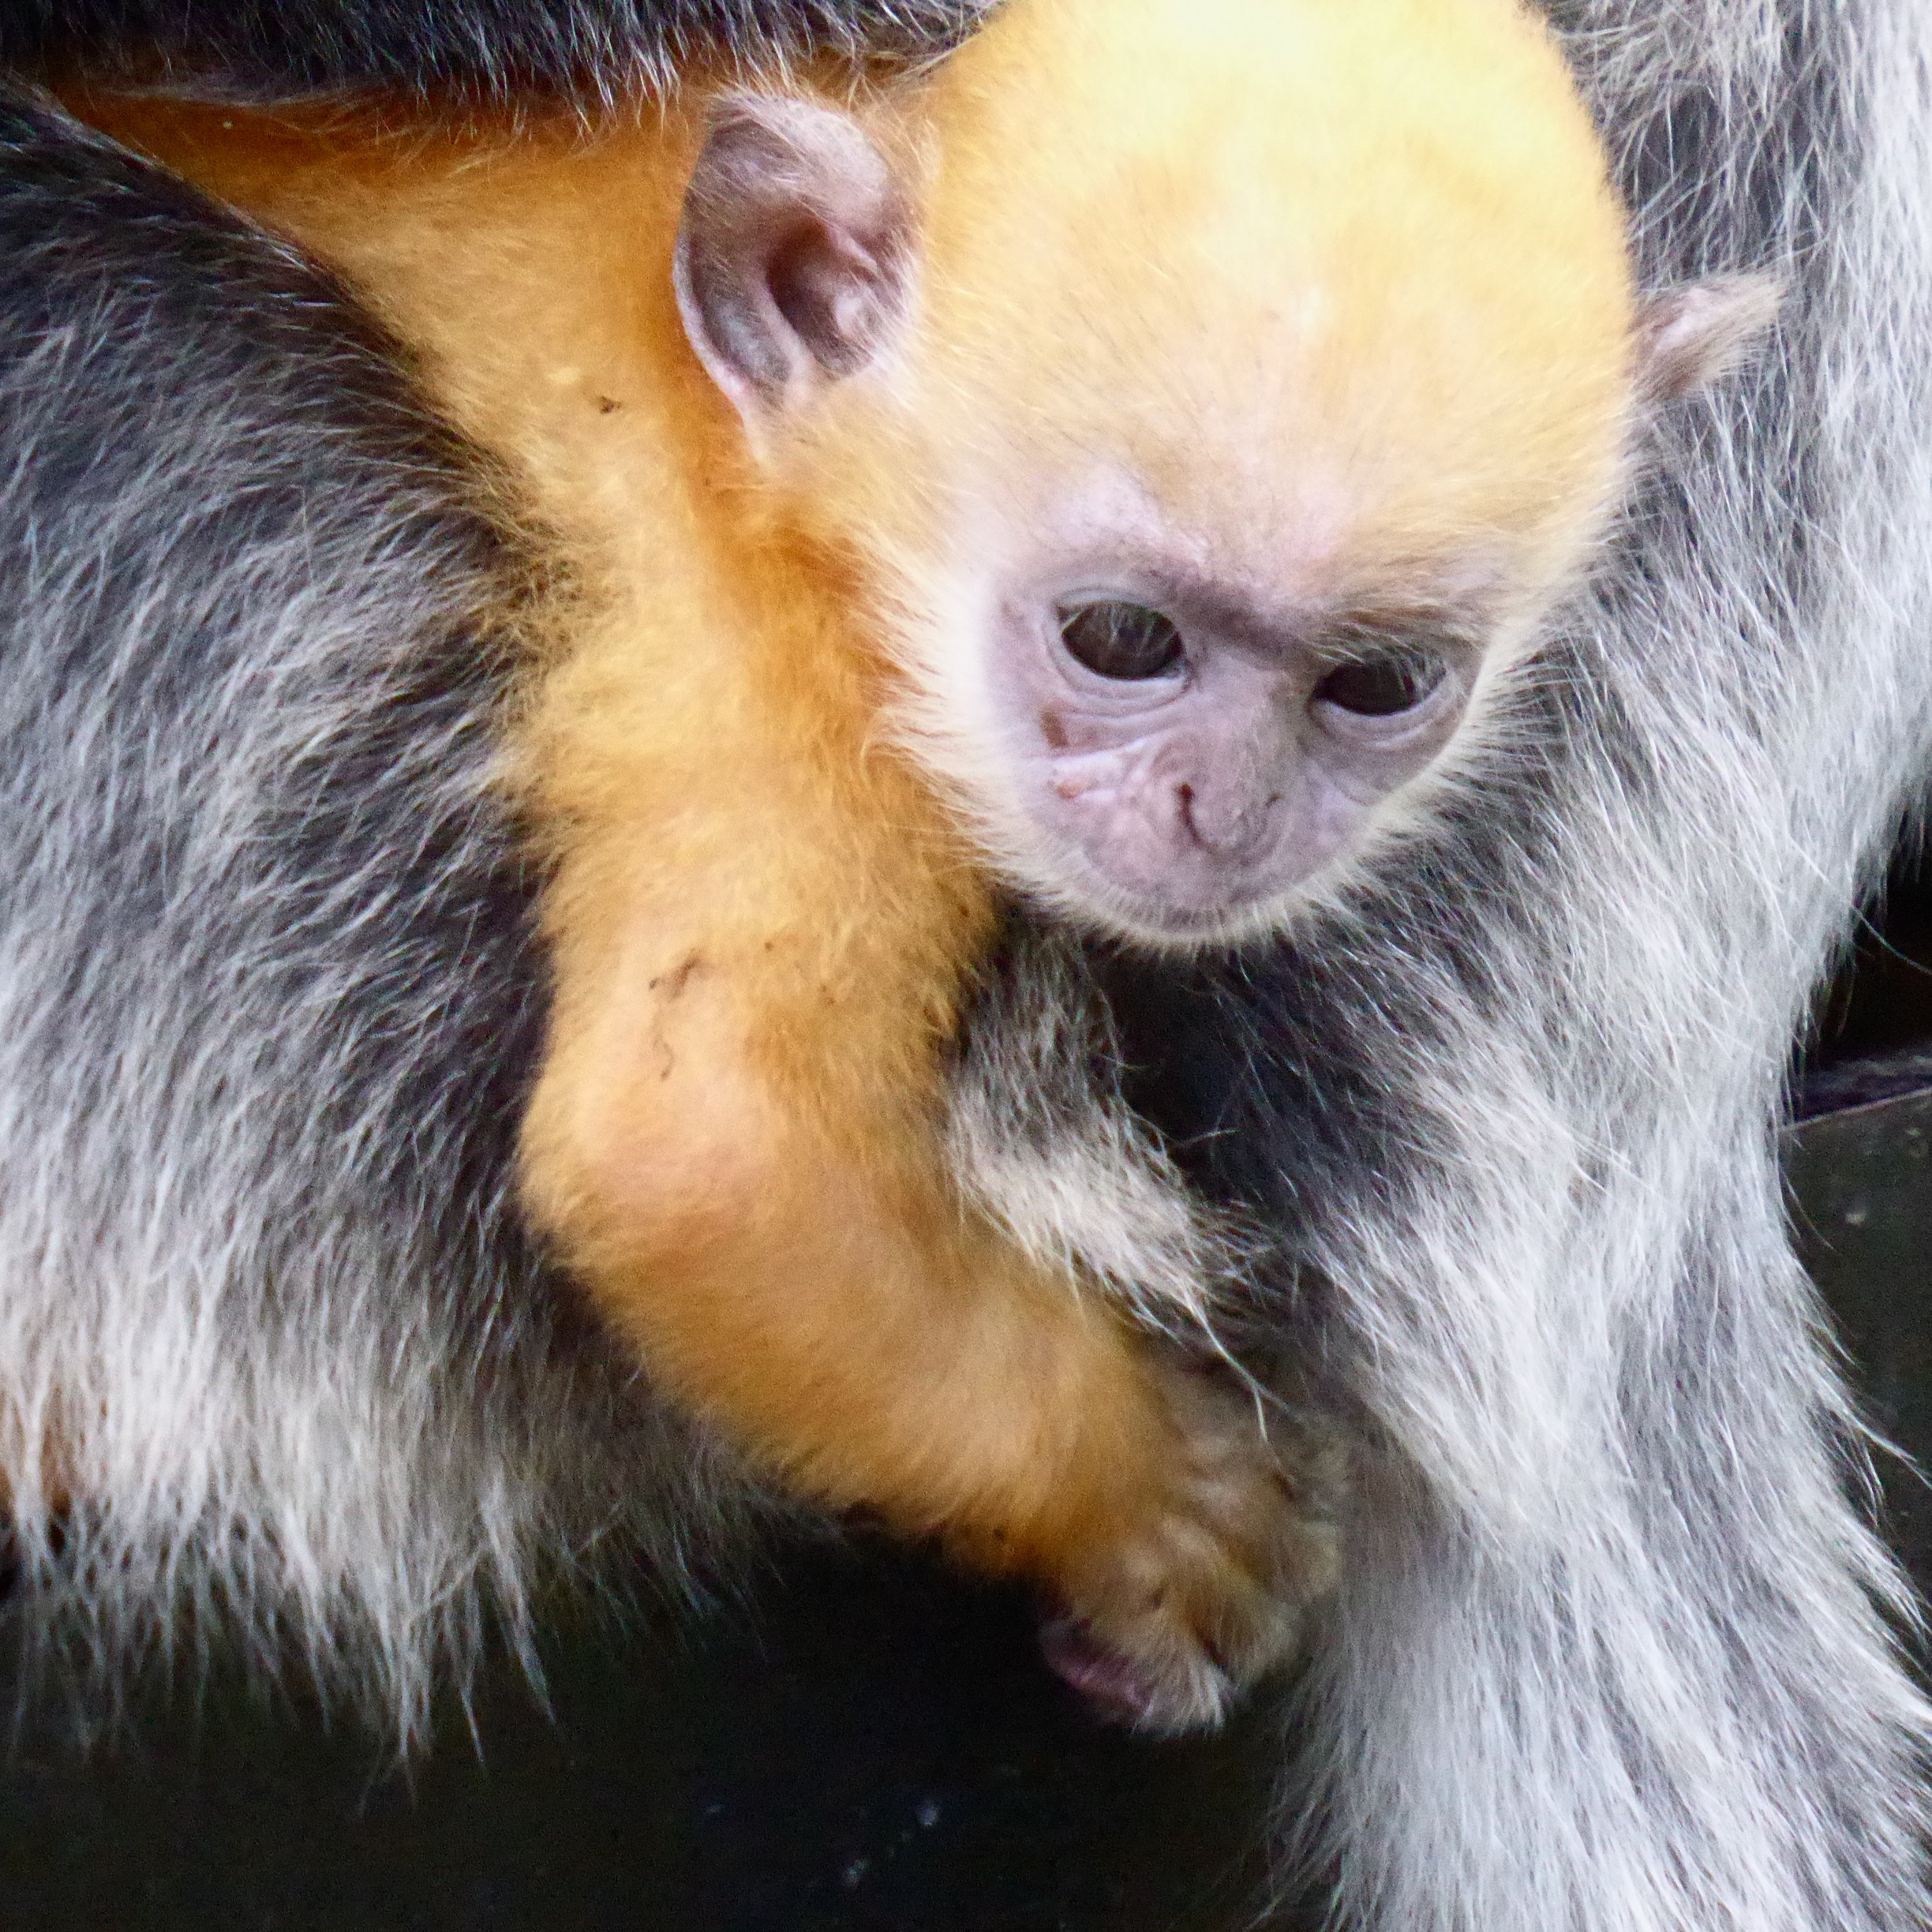 orange-coloured monkey baby cuddled with mother